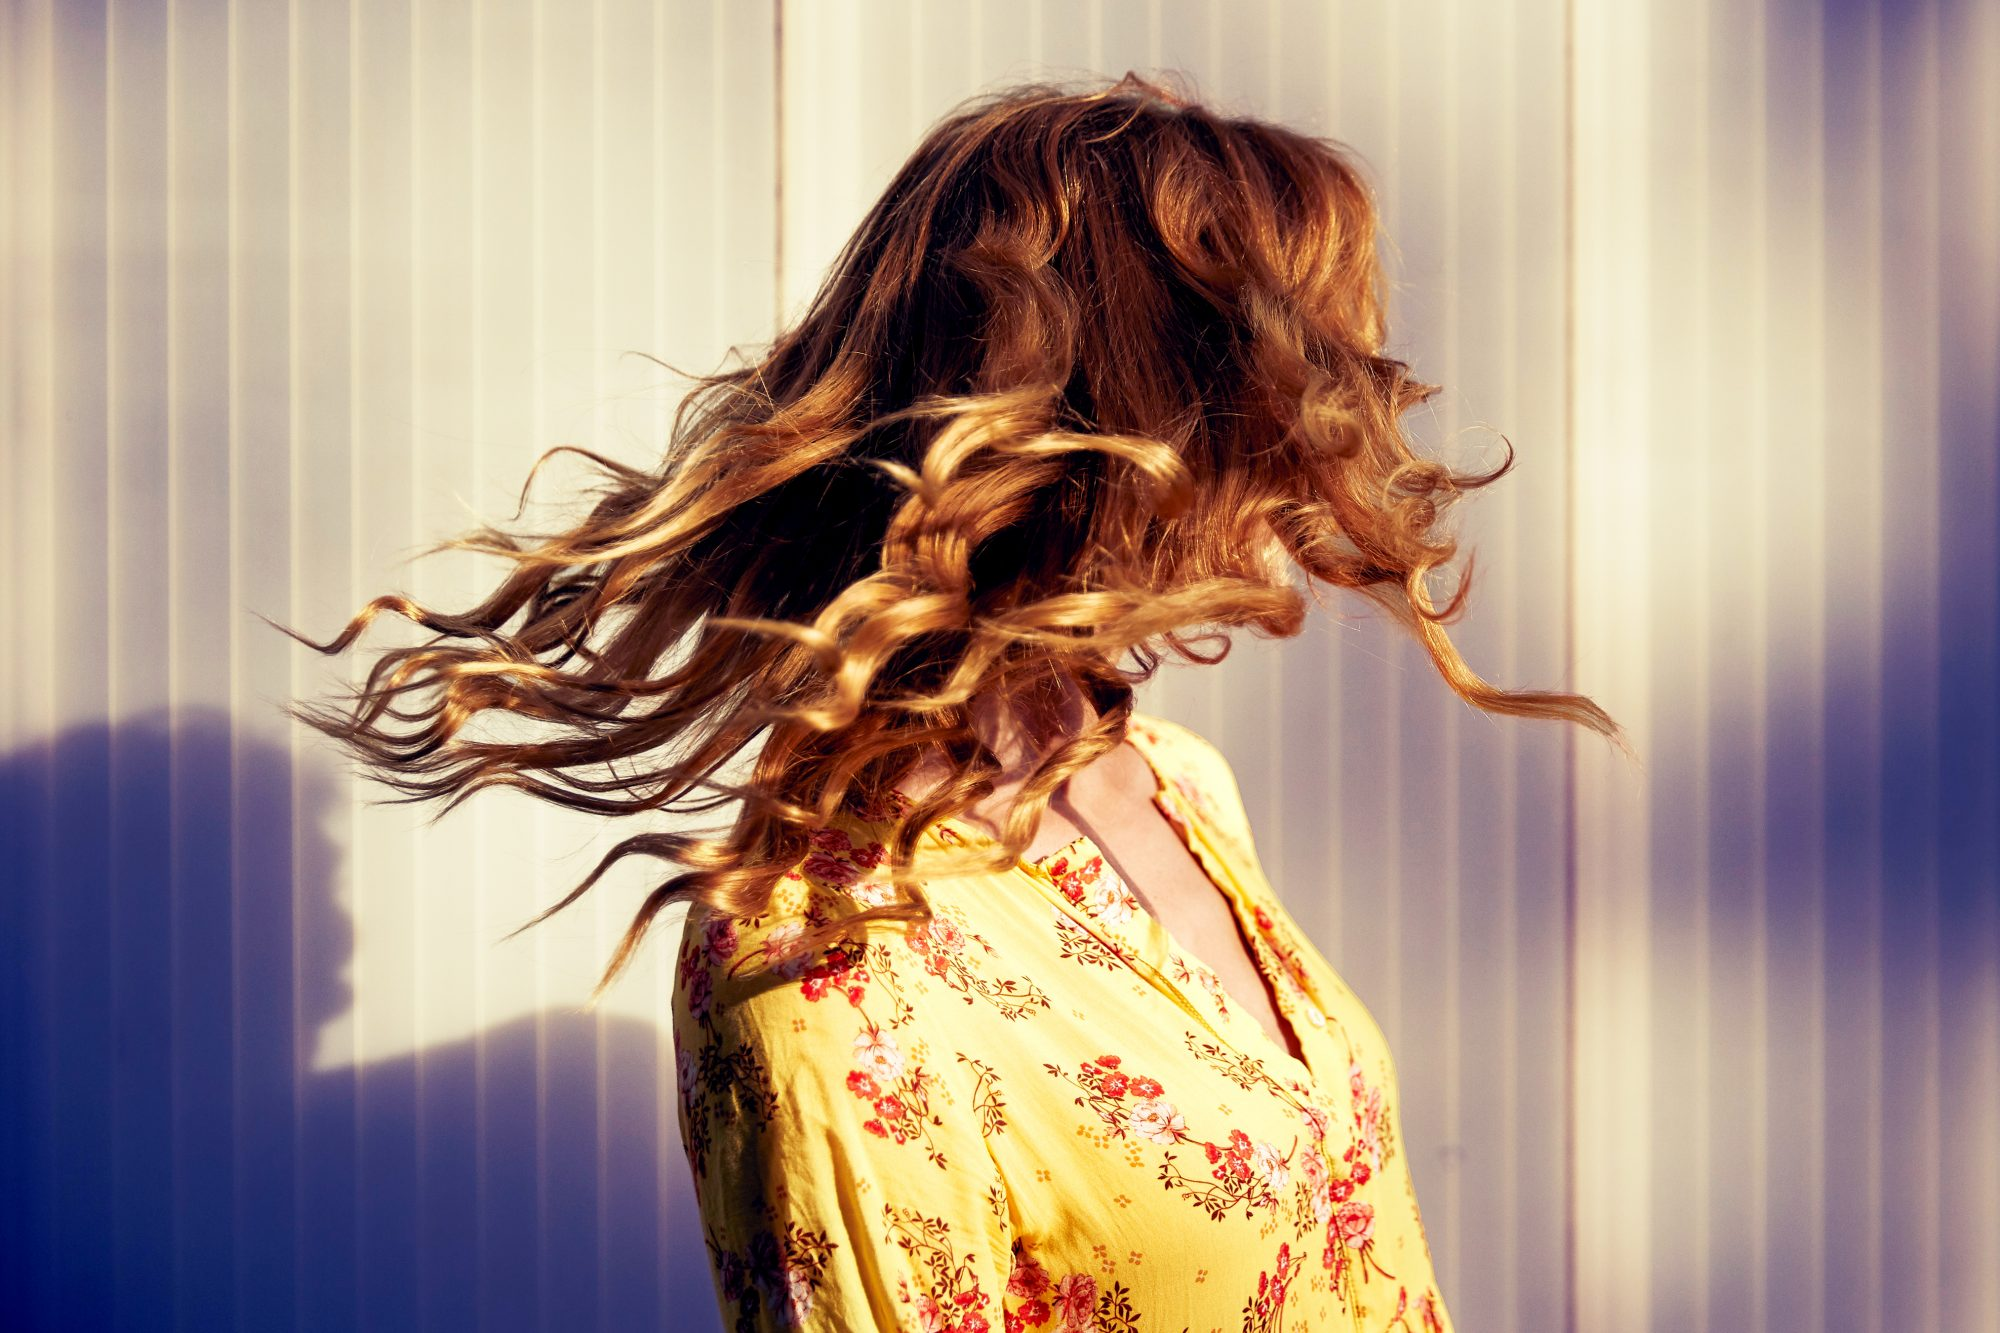 Hair-Growth-Oil-GettyImages-1223859535